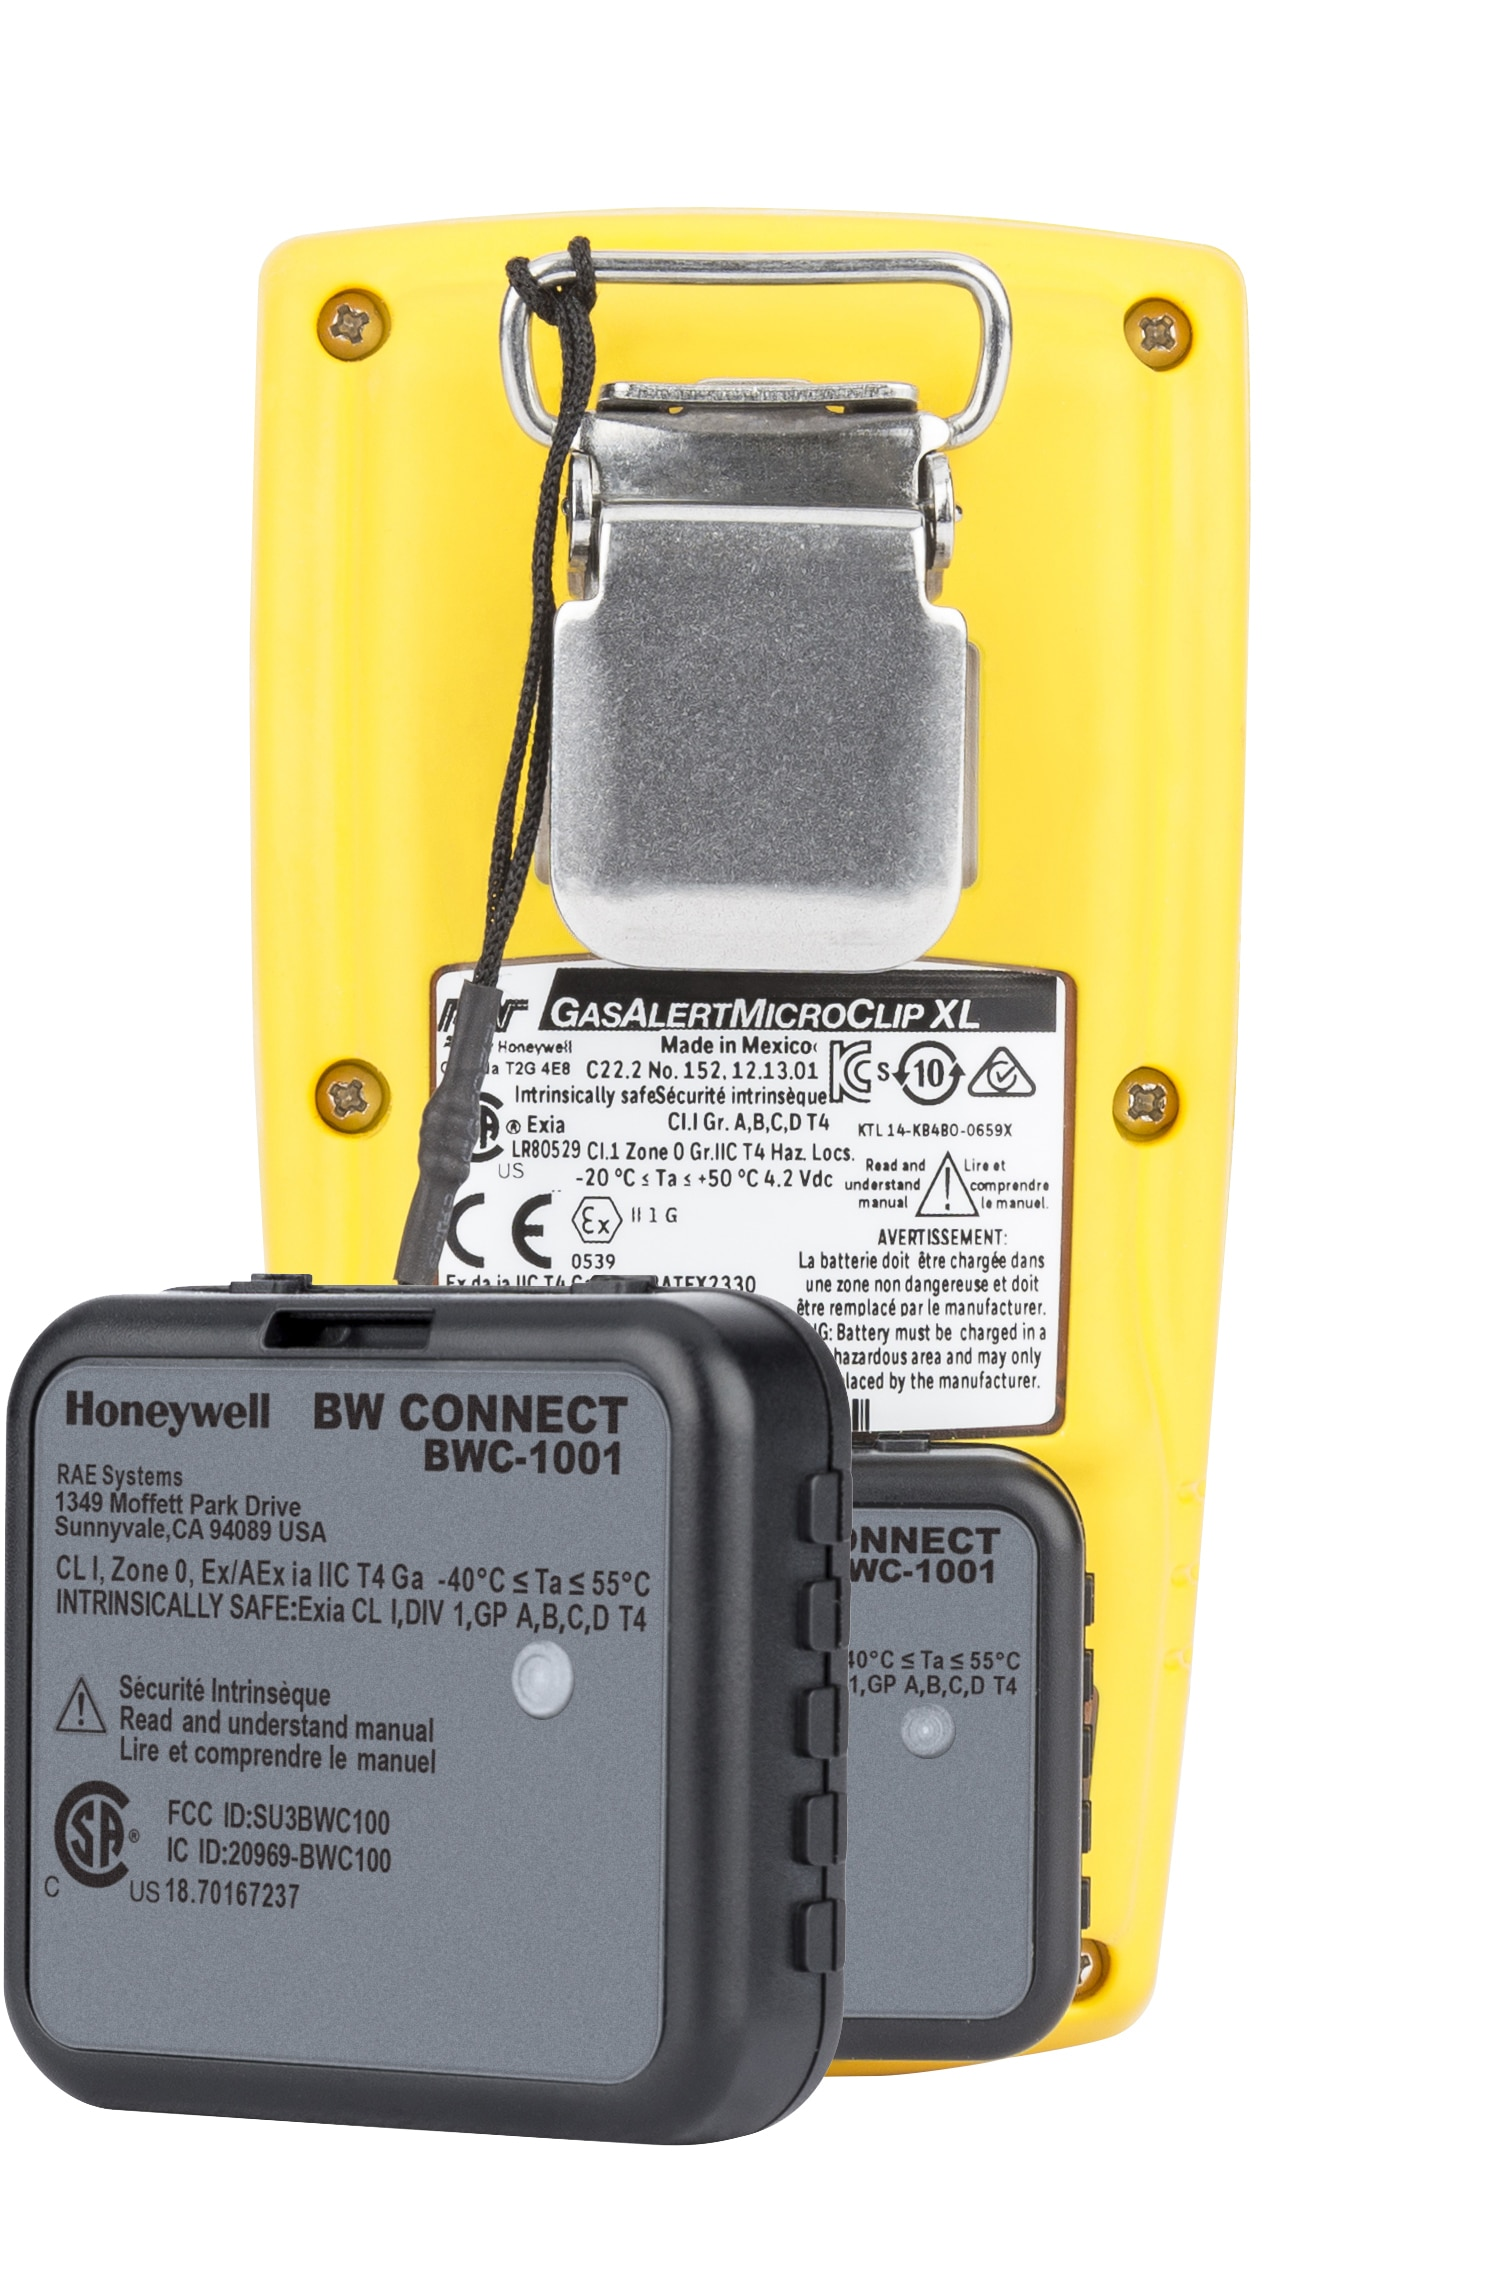 Honeywell BW™ Connect for wireless gas detection